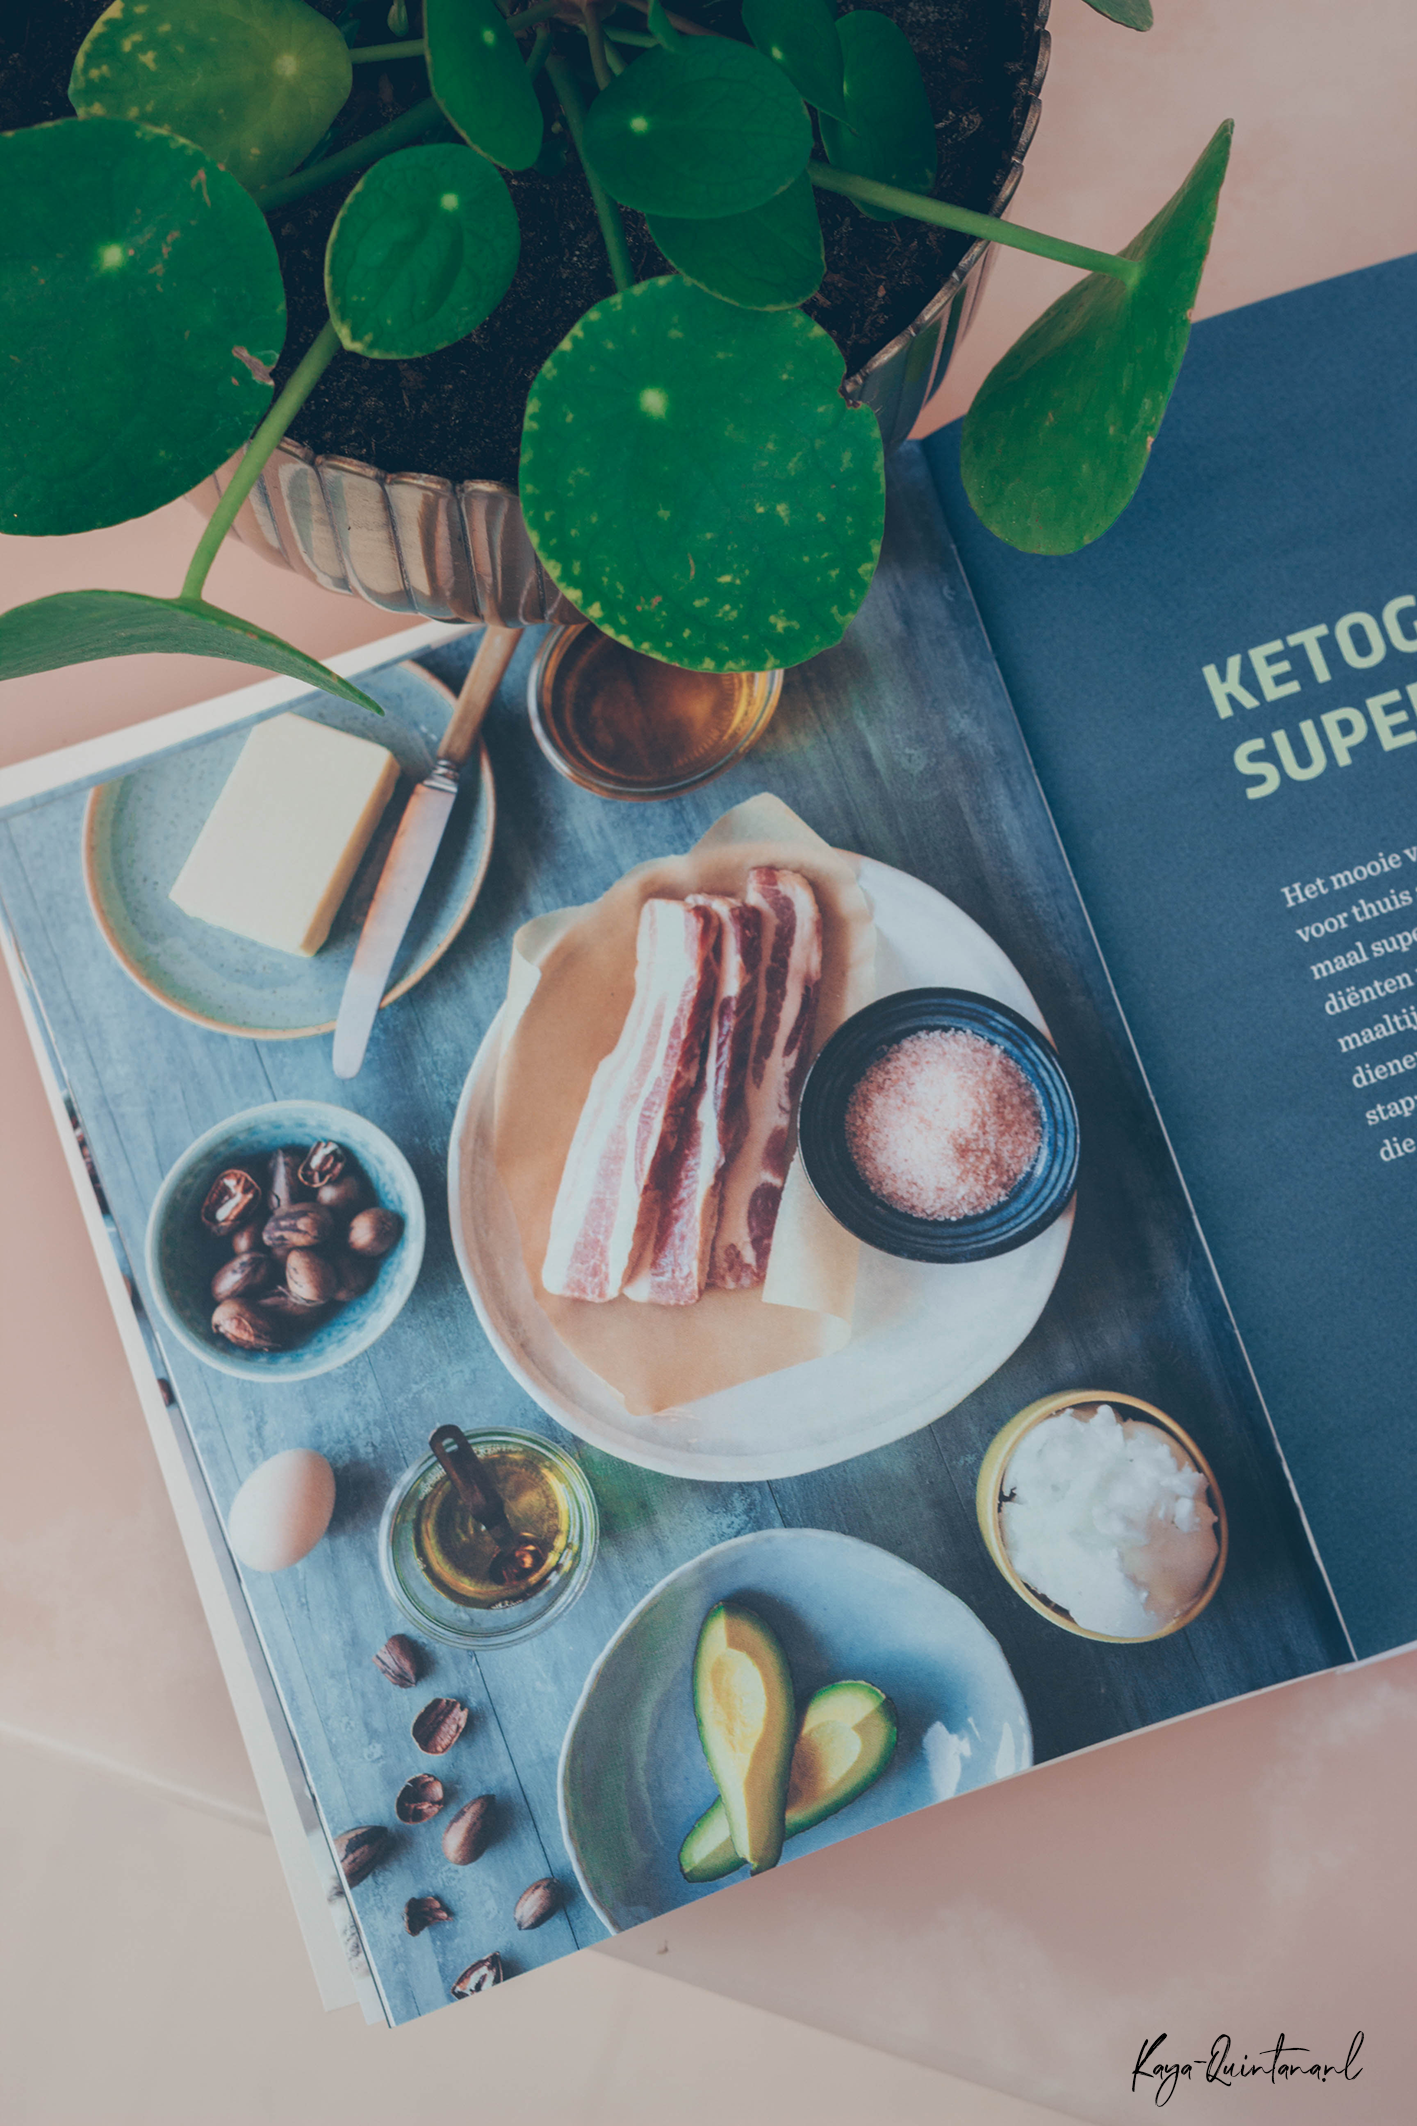 keto diet cookbook review